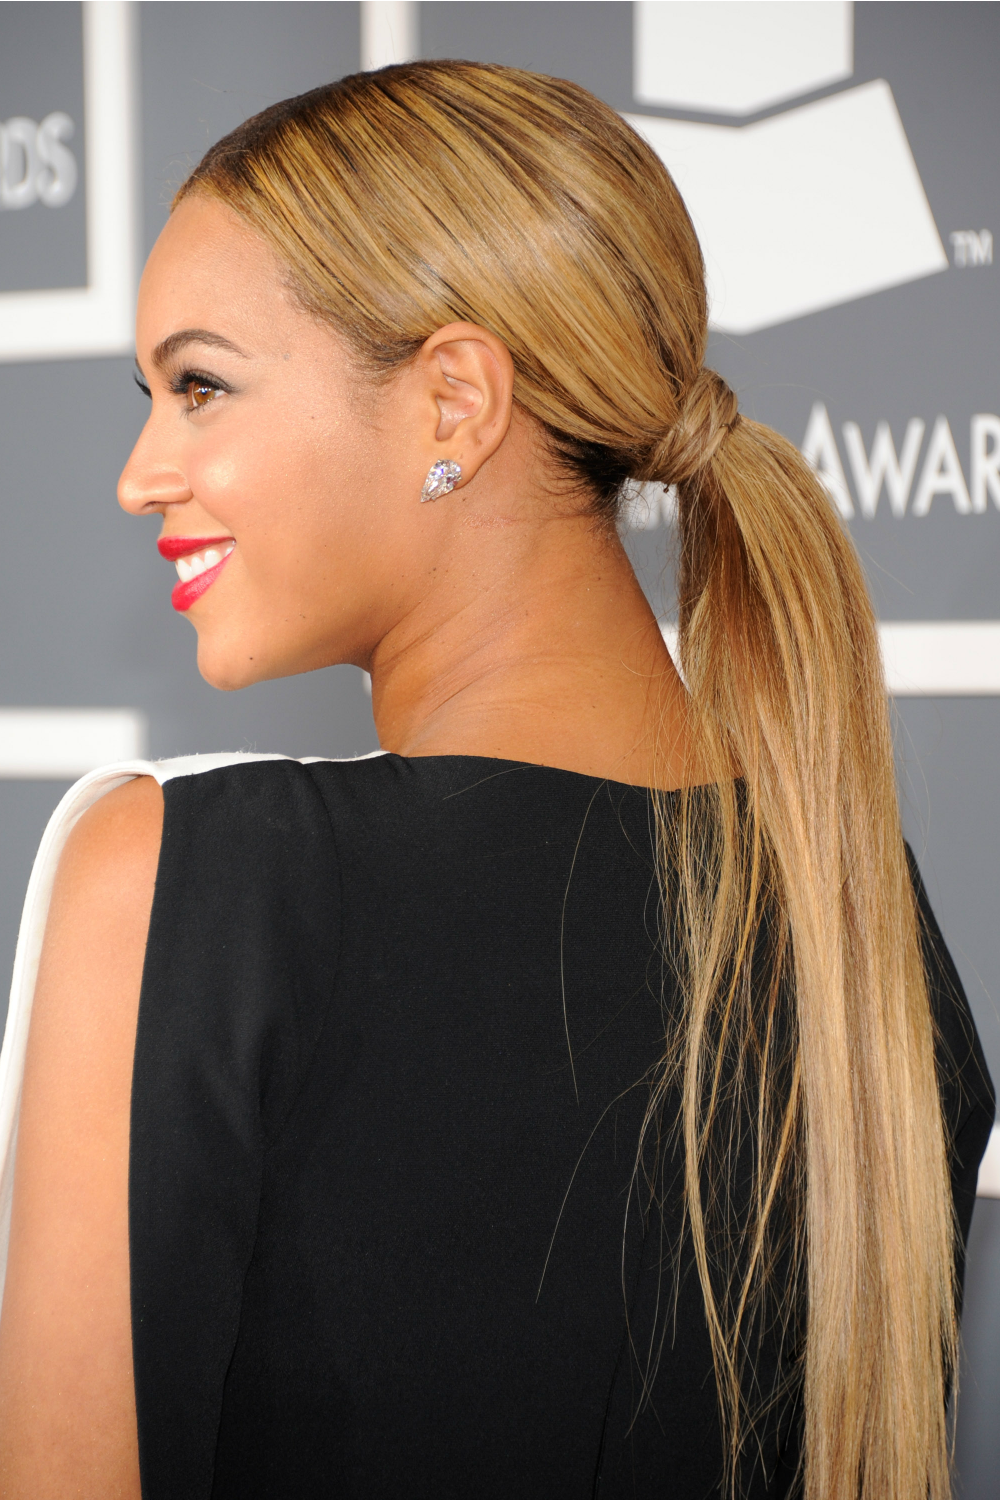 20 Sexy New Ways To Style A Ponytail